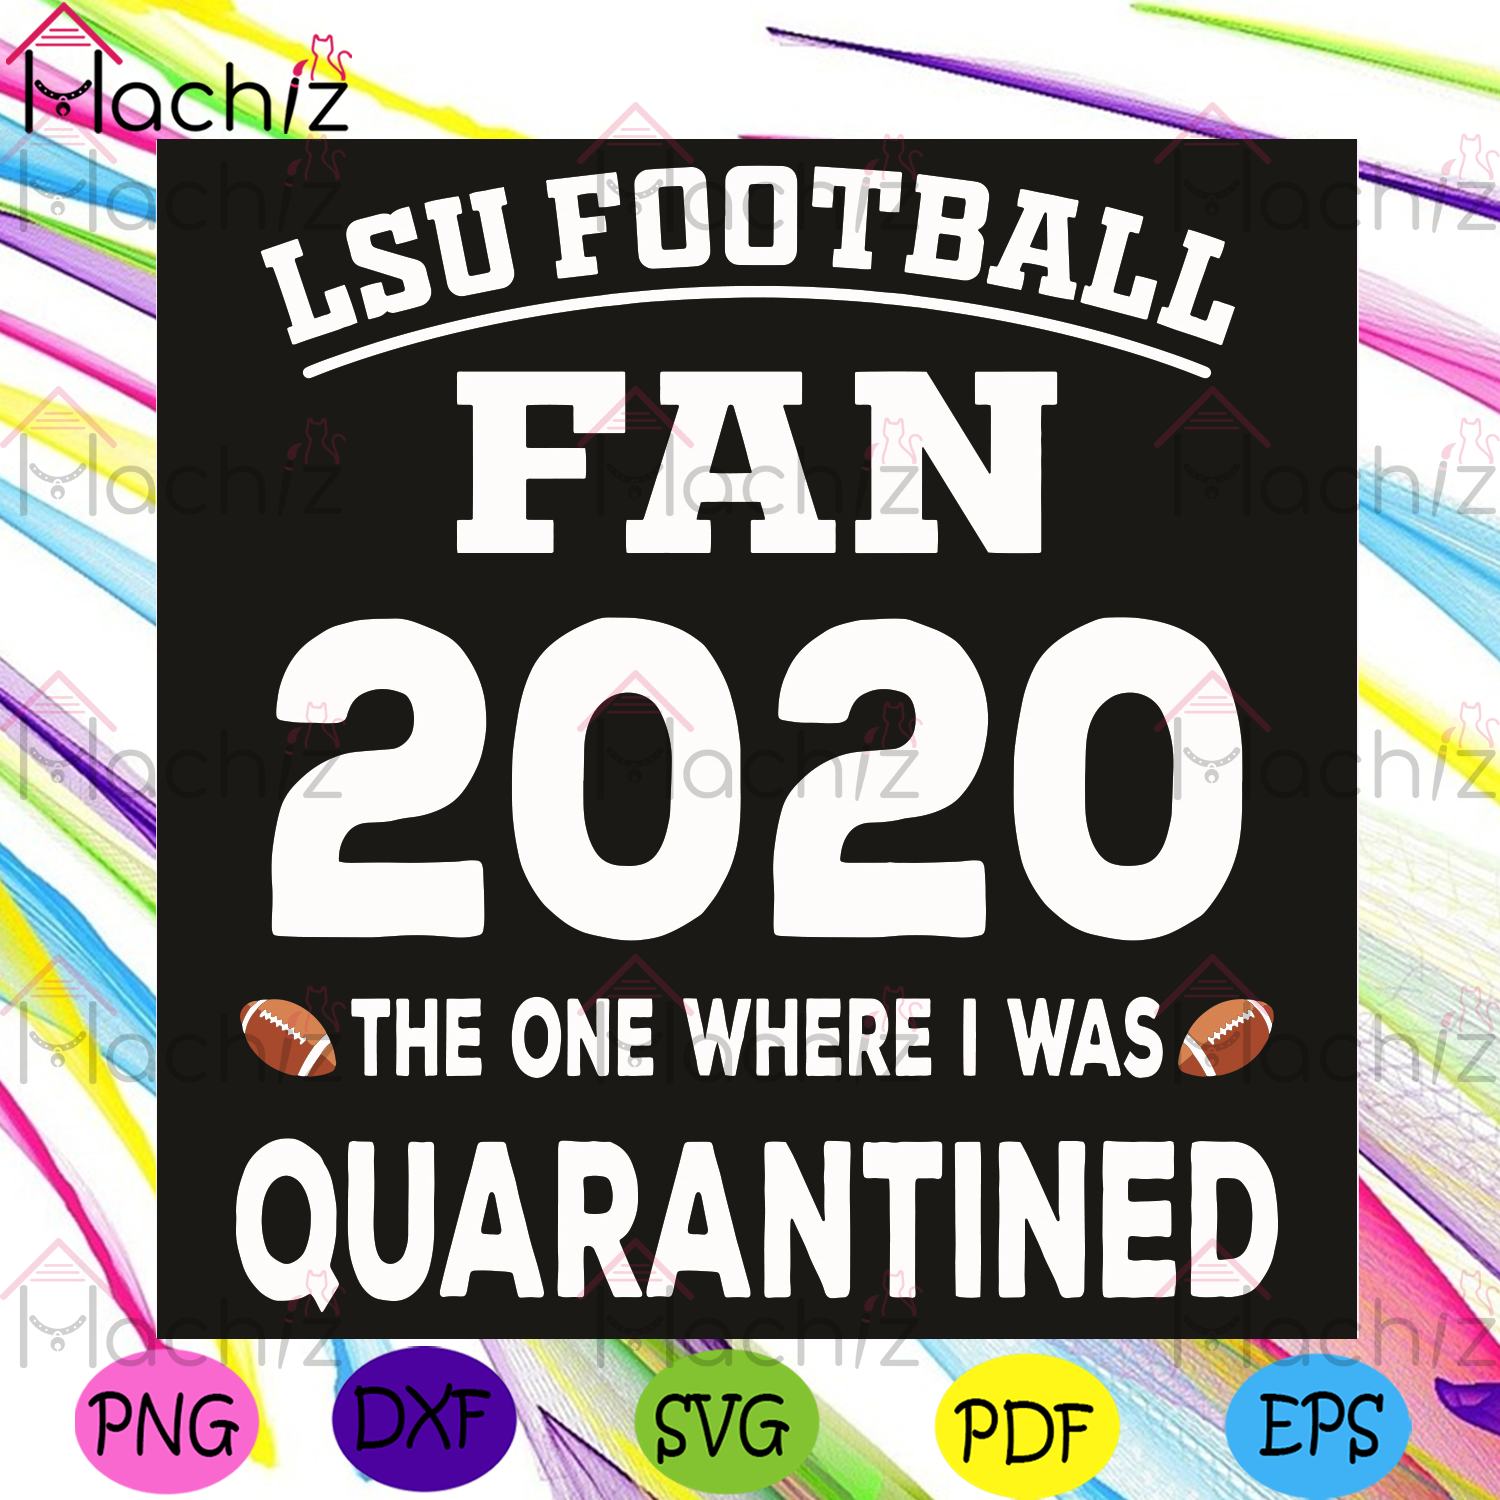 Lsu Football Fan 2020 The One Where I Was Quarantined Svg, Sport Svg, Lsu Football Svg, Quarantine 2020 Svg, Lsu Football Gifts Svg, Lsu Football Fans Svg, Lsu Football Lovers Svg, 2020 Lsu Football Svg, Football Gifts Svg